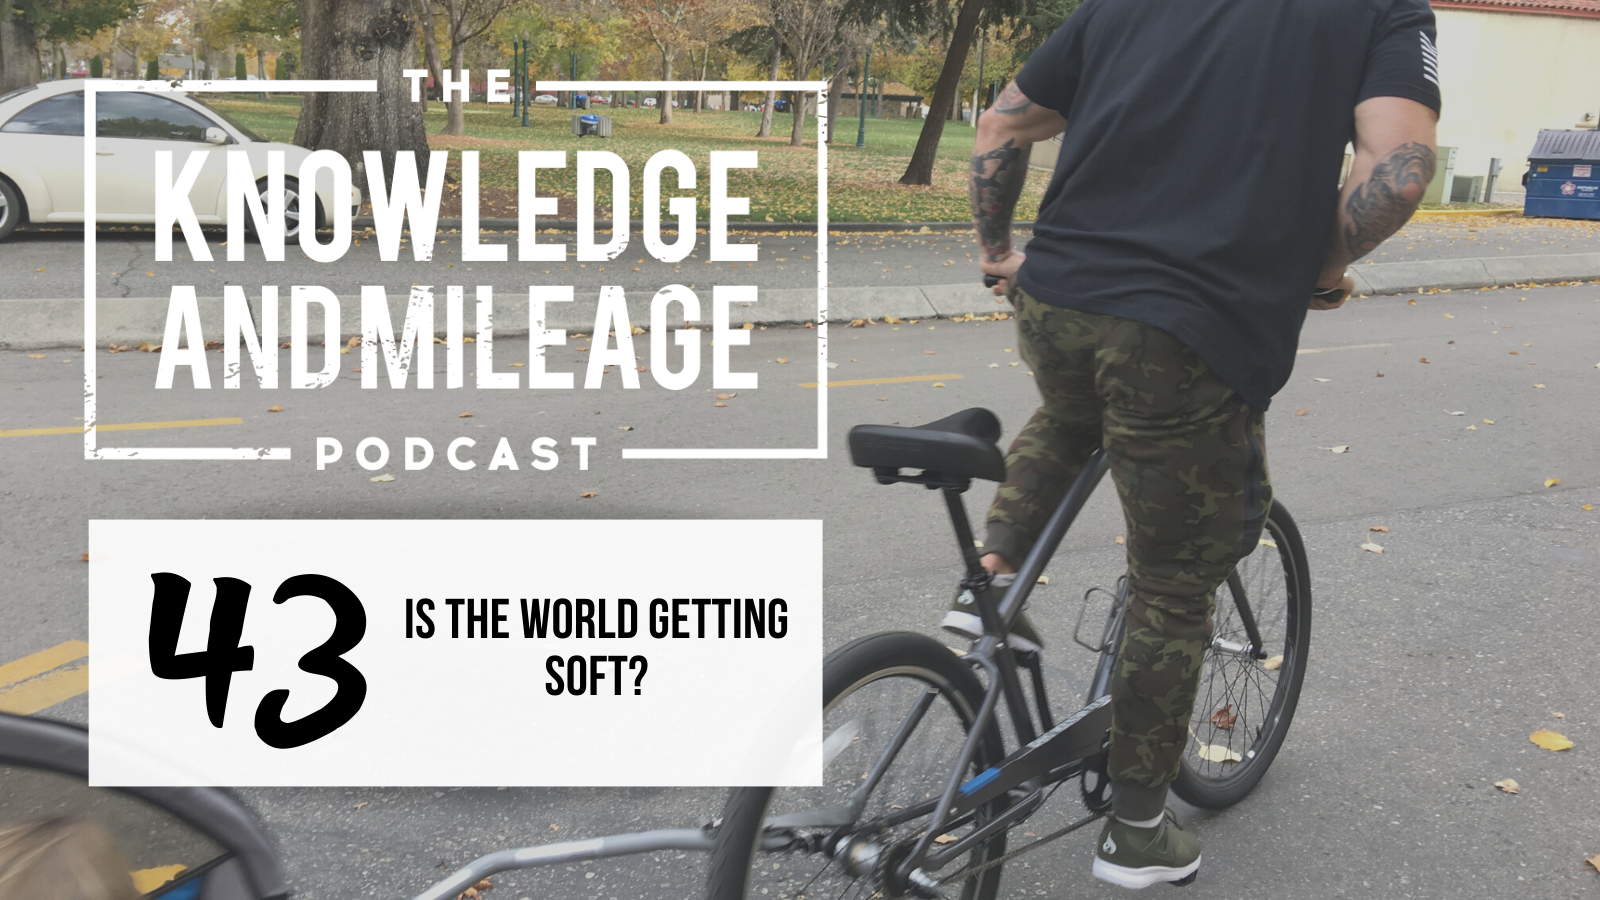 EP 43: Is the World Getting Soft? and How Do I Overcome the Millennial Generation?